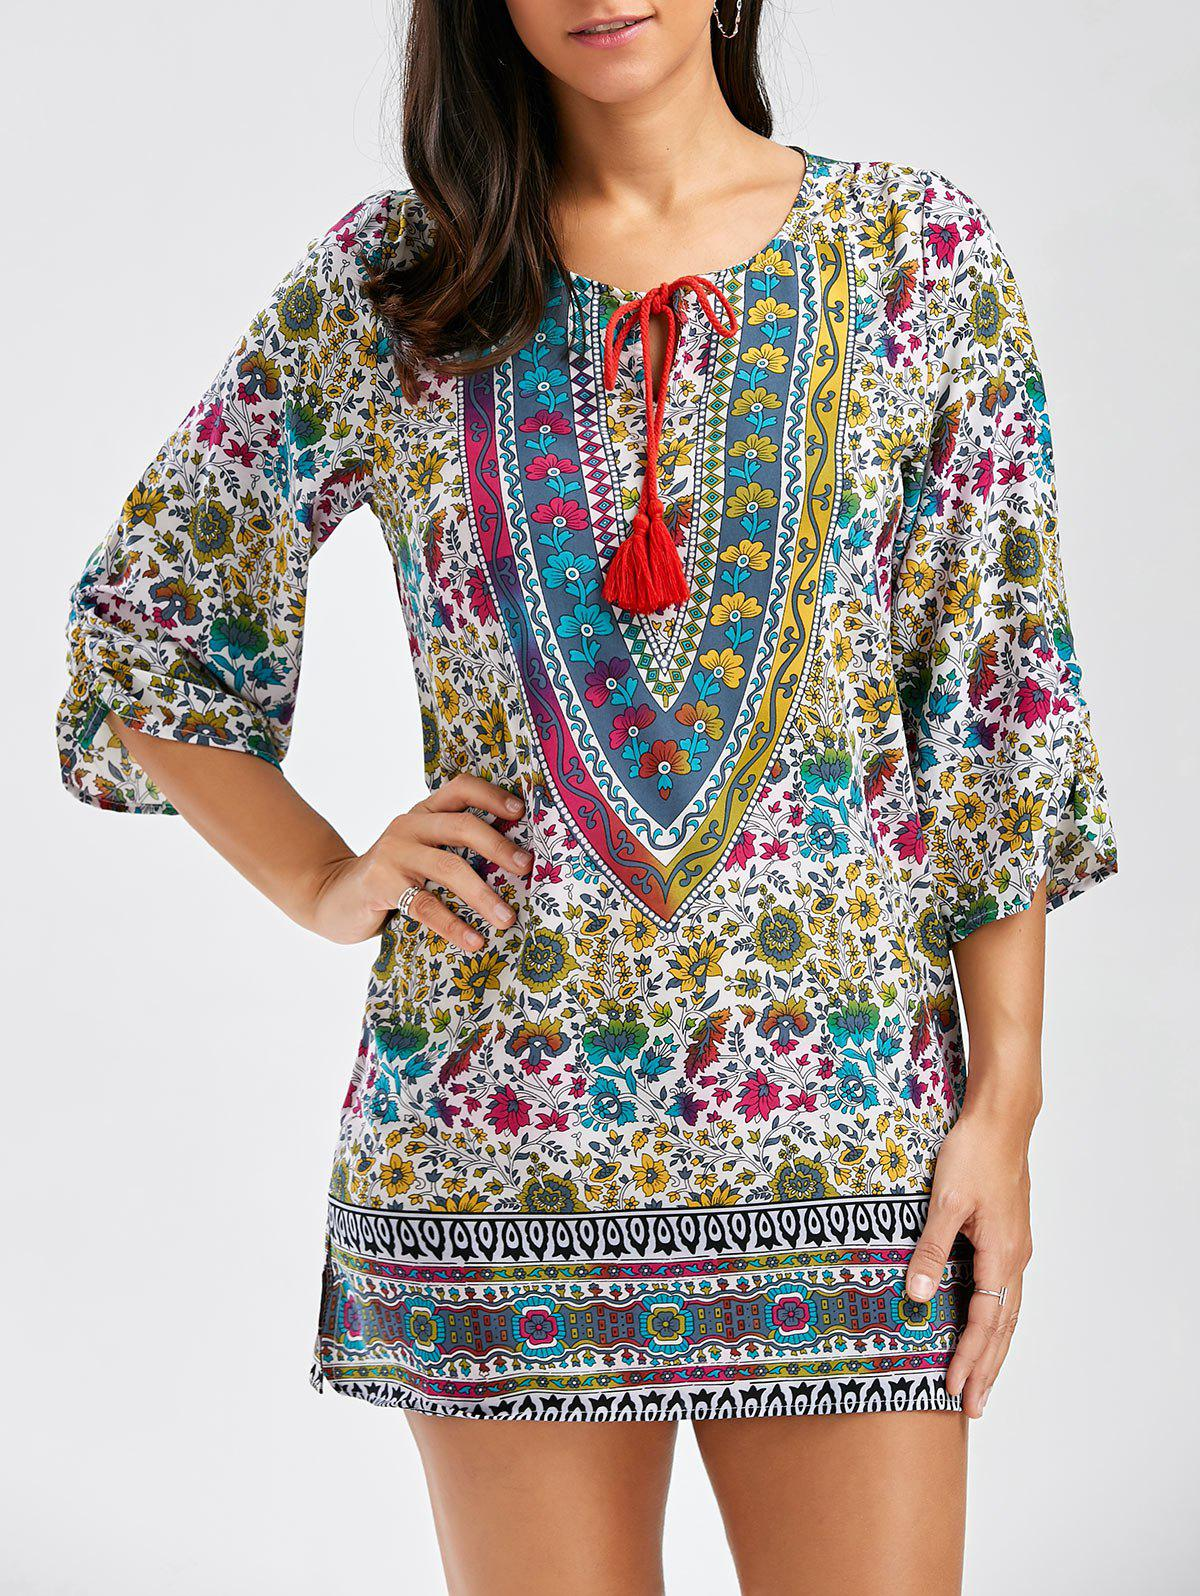 Vintage Style V-Neck Full Print 3/4 Sleeve Women's Dress - COLORMIX M